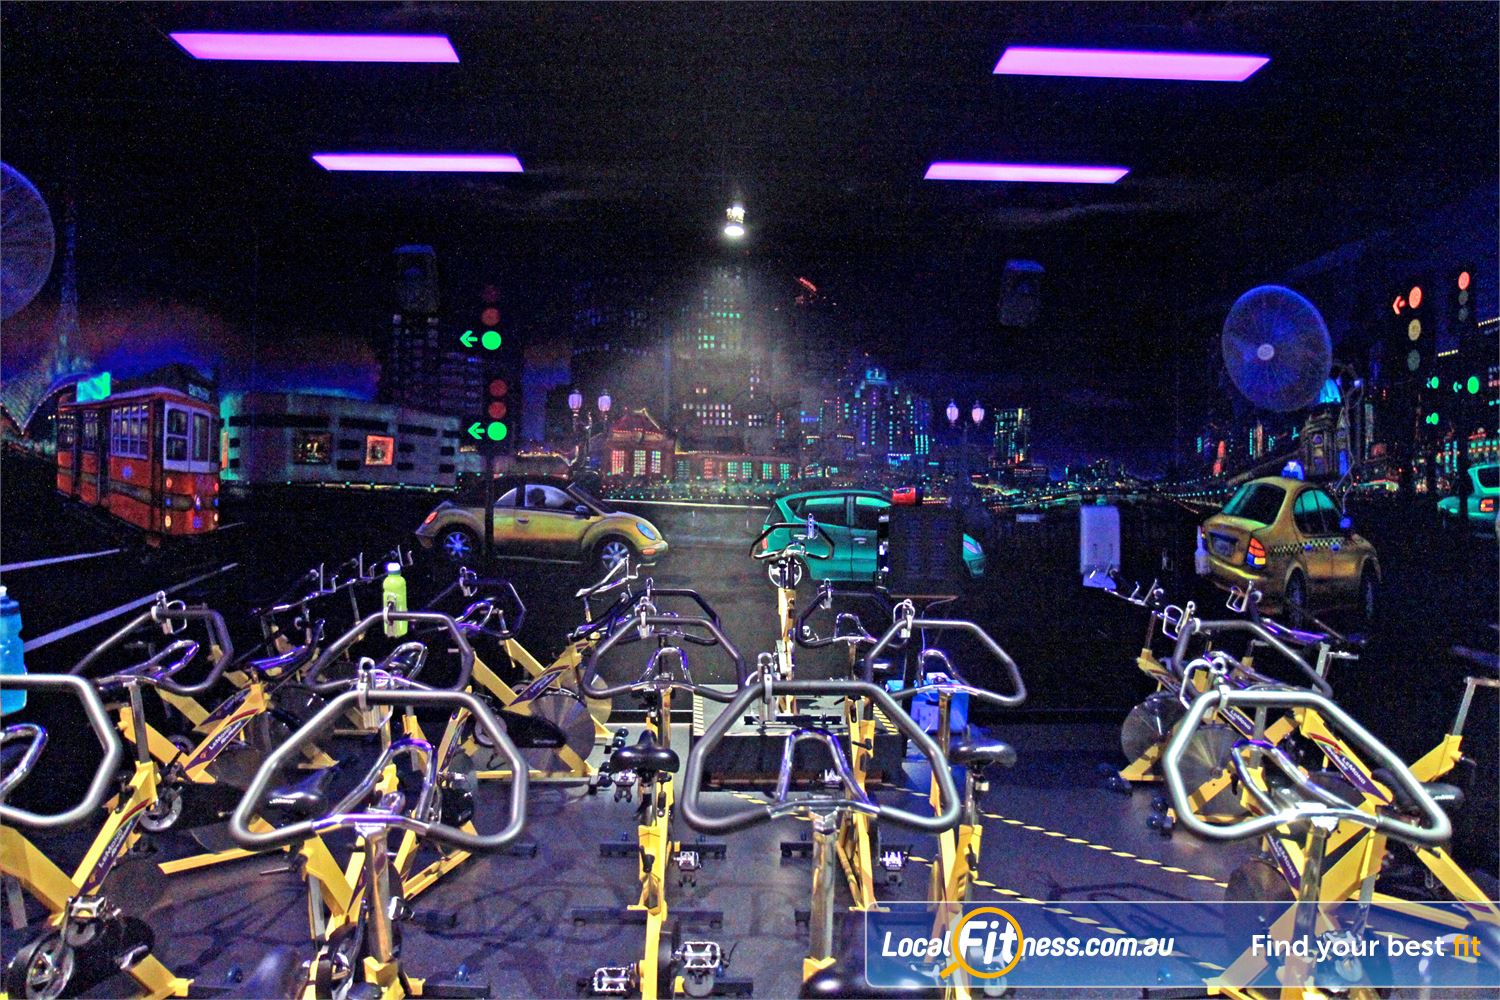 Goodlife Health Clubs Near Mount Gravatt East Dedicated Holland Park spin cycle studio.